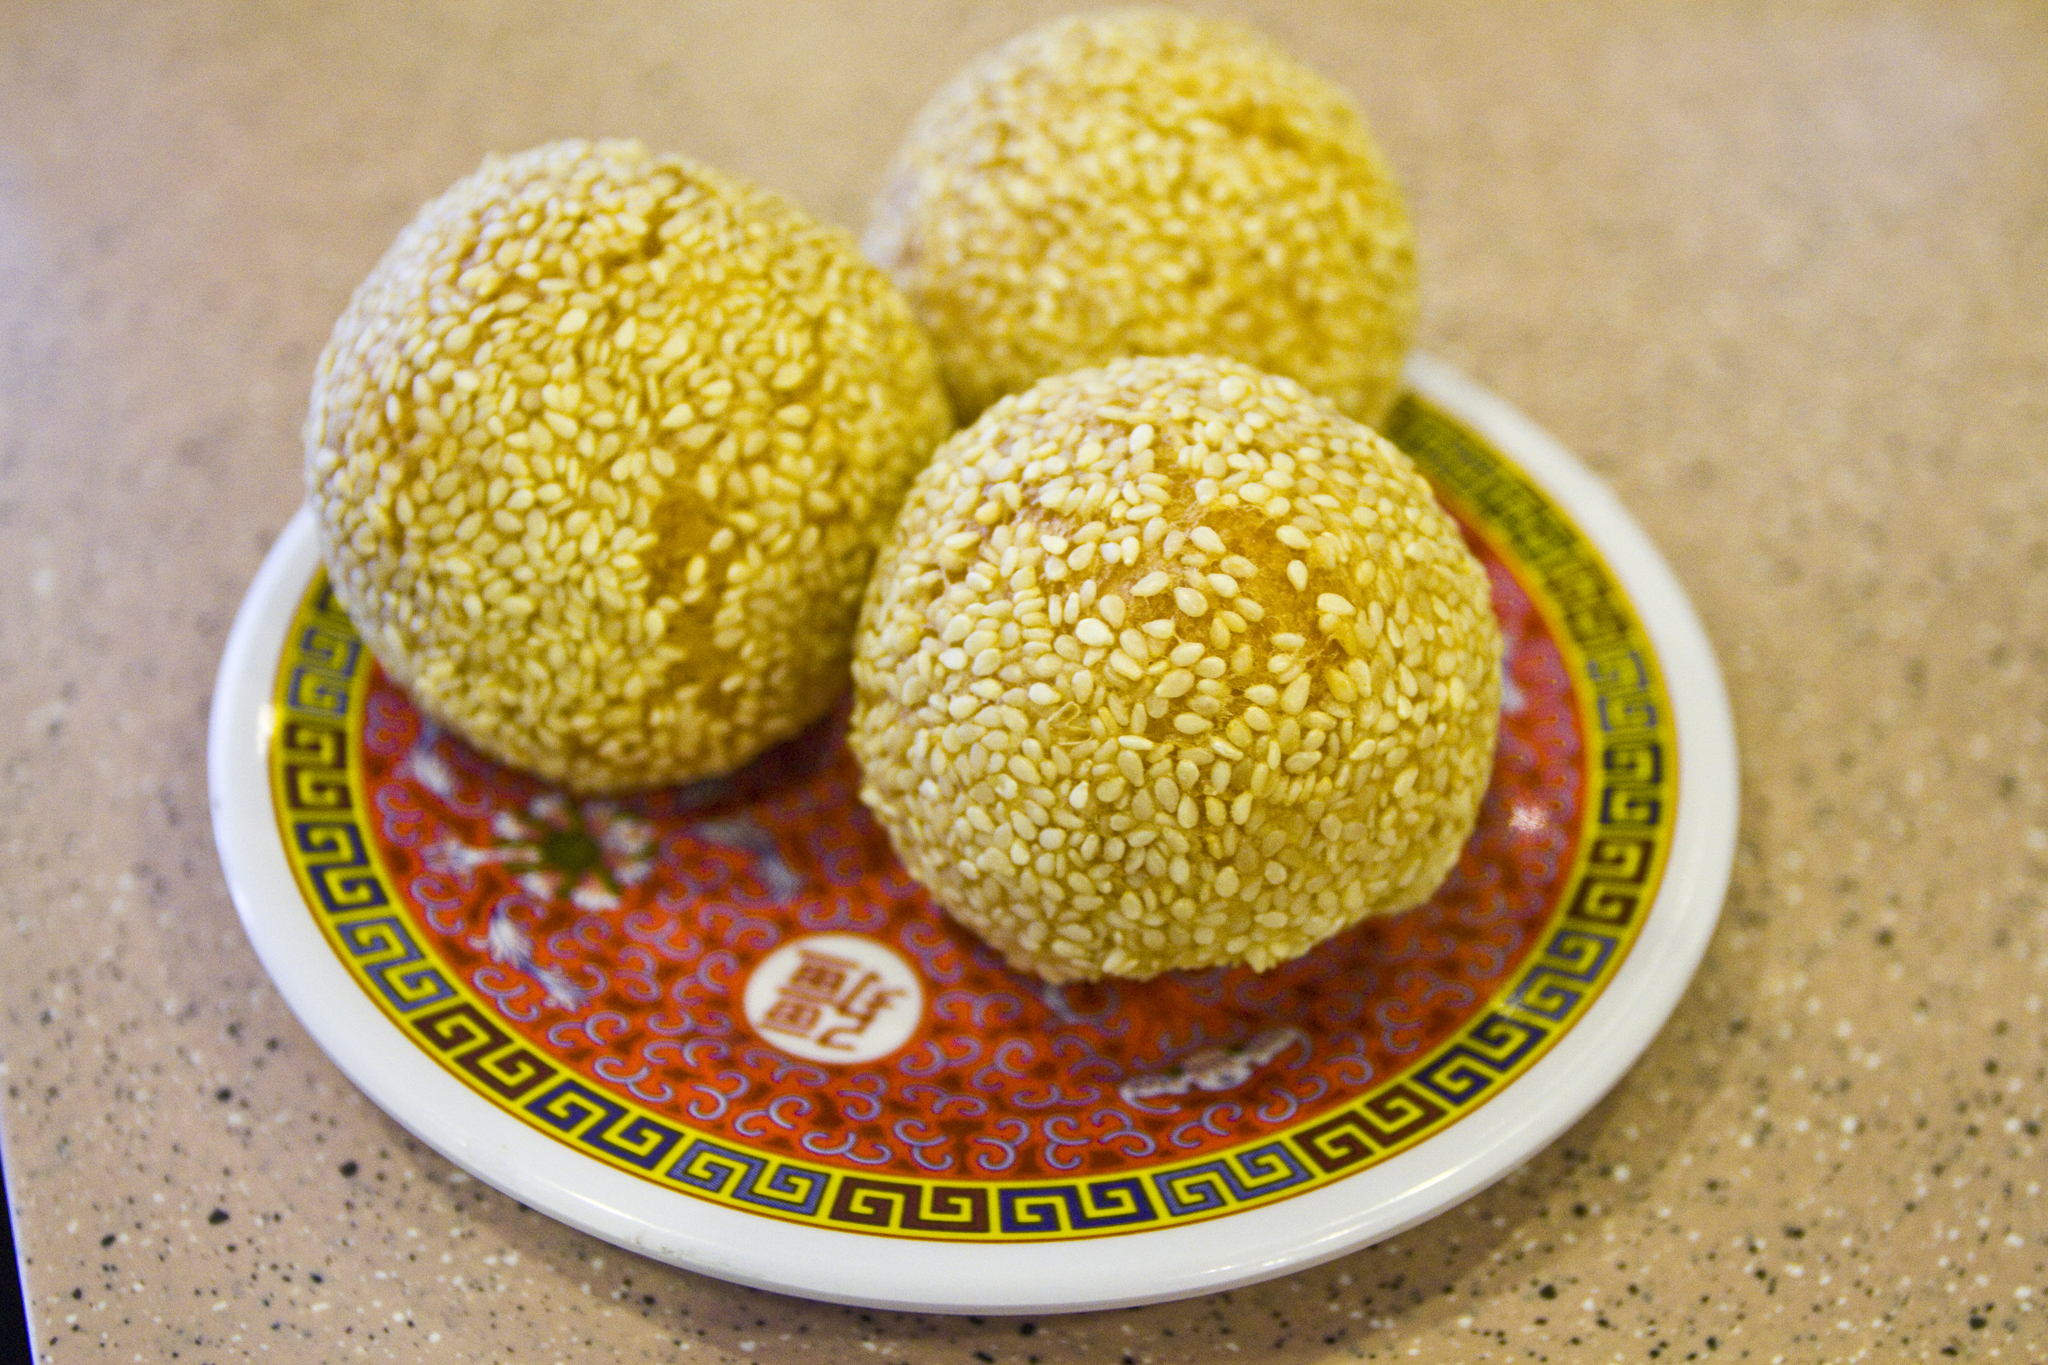 Cheap eats in Chinatown: Best nosh on a budget